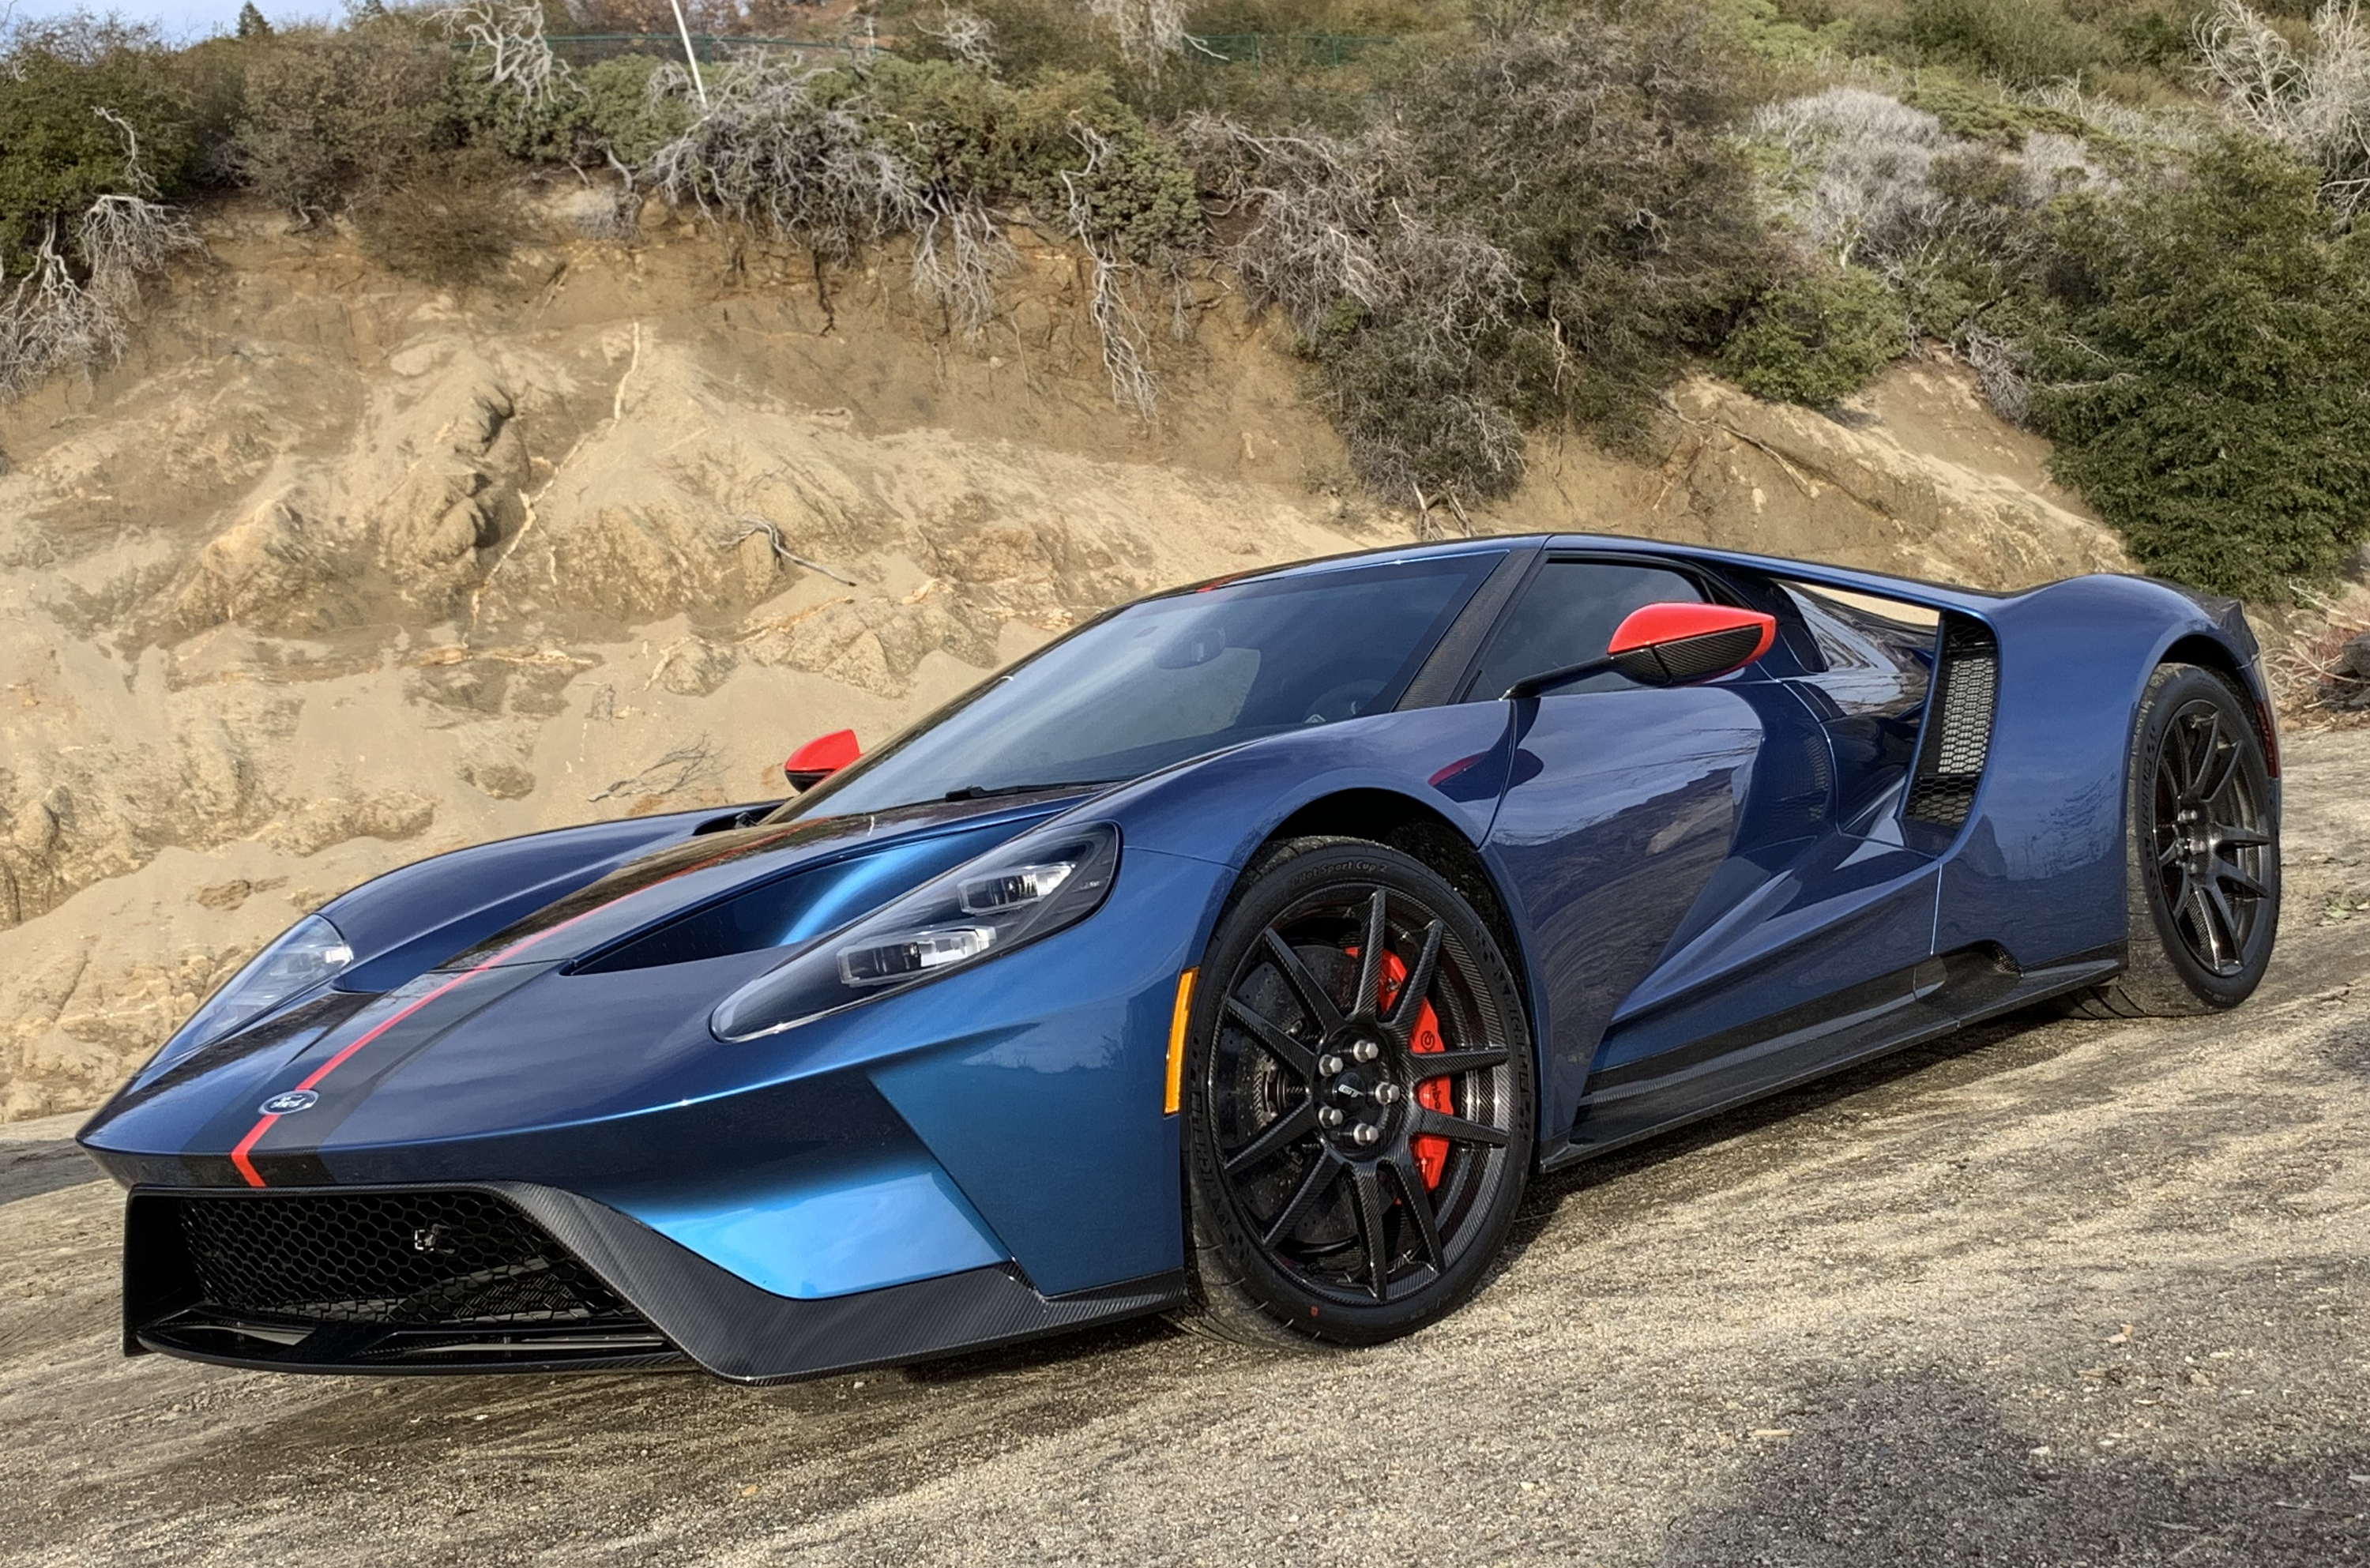 2019 Ford GT Carbon Series Palomar Front